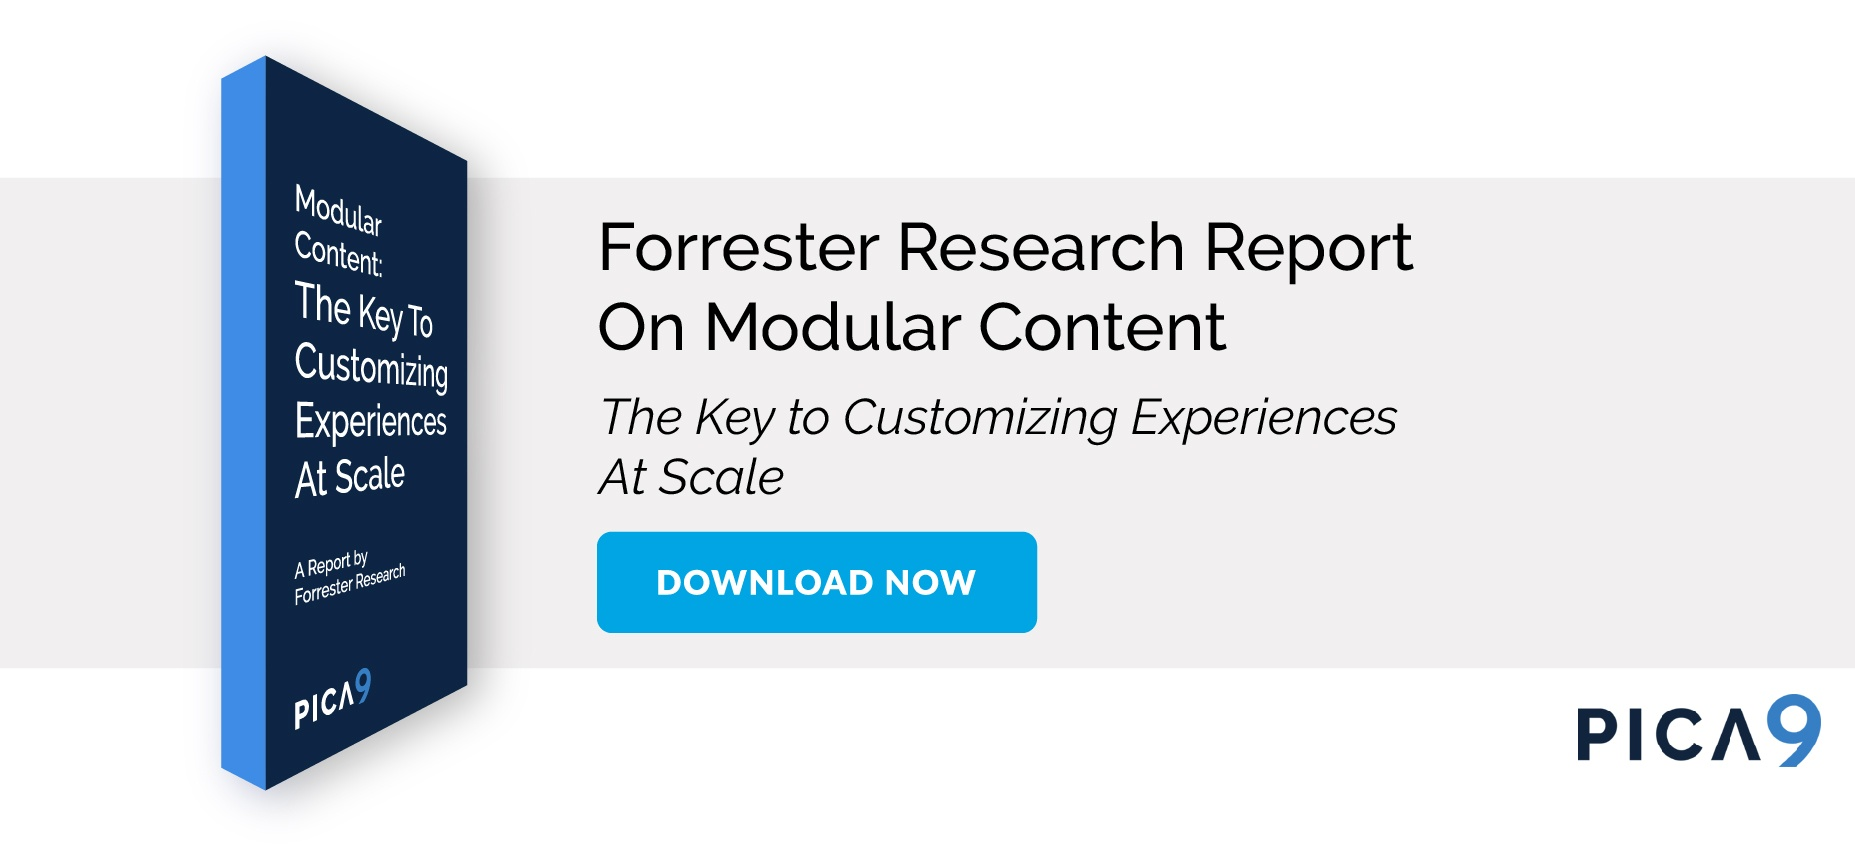 modular content forester research report